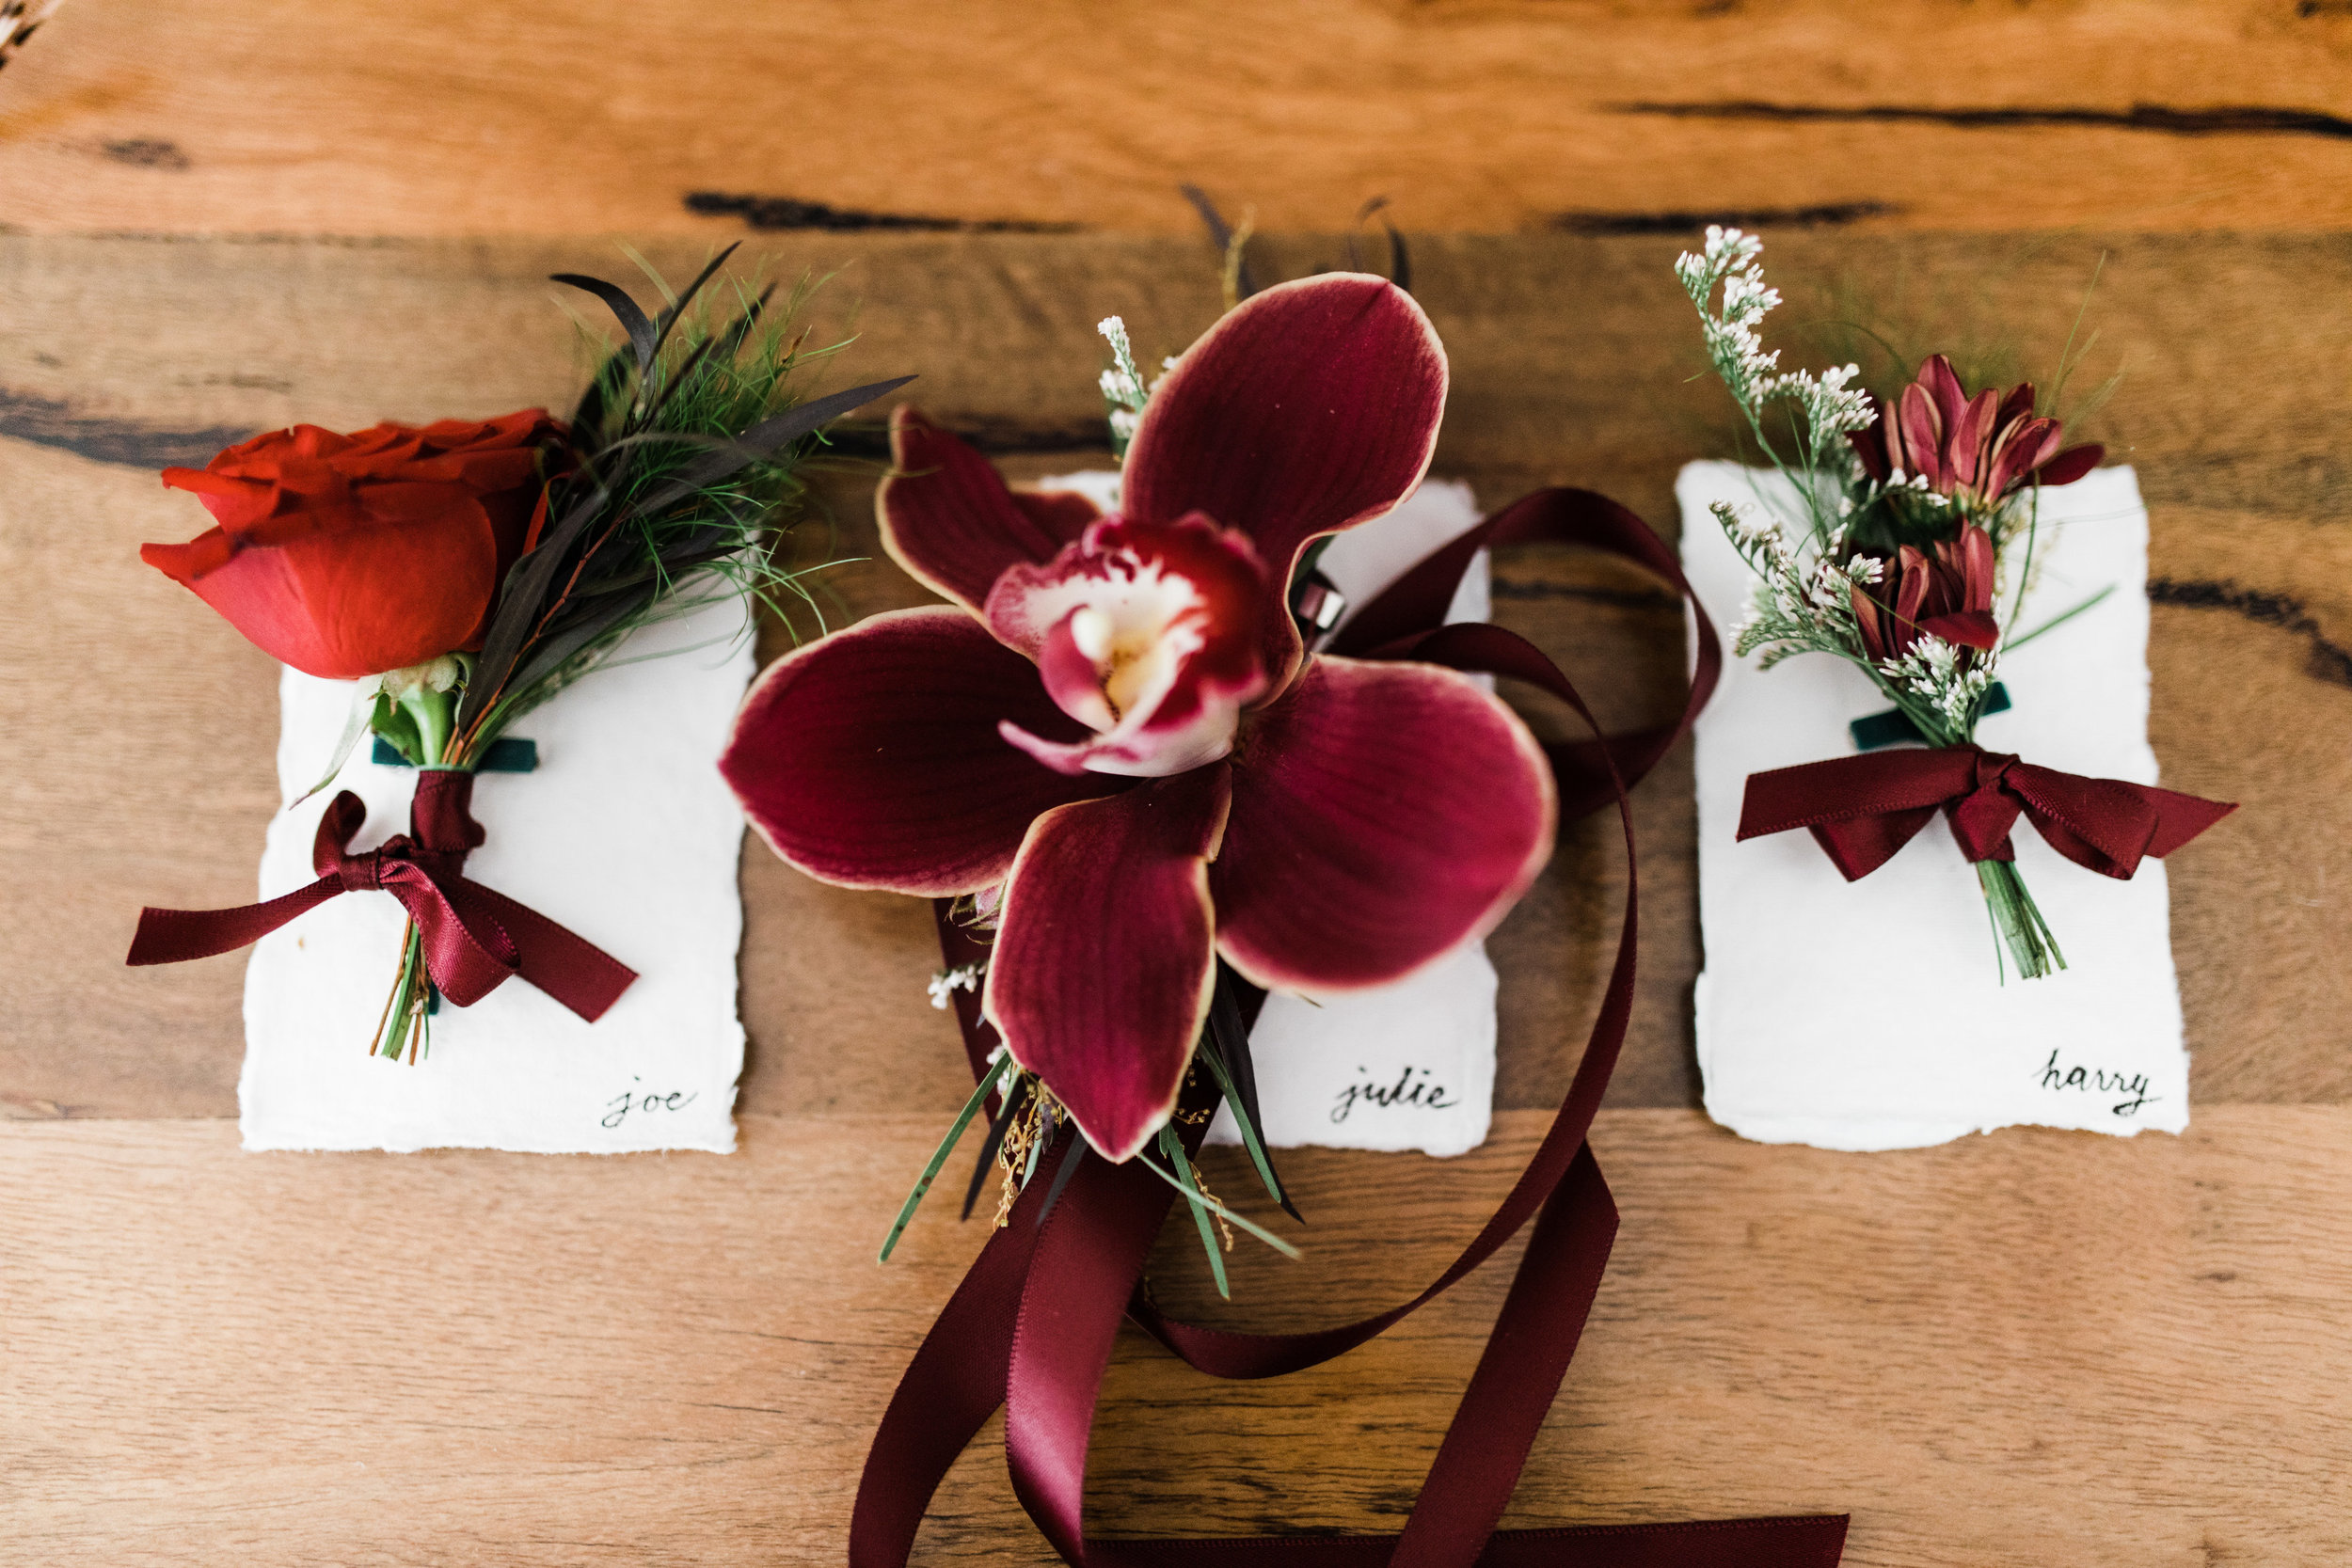 Family wrist corsages & buttonholes - Often, the parents of the couple add a buttonhole or corsage to their outfit on the day. It makes them feel that extra bit special, particularly in photos and if they are walking down an aisle.